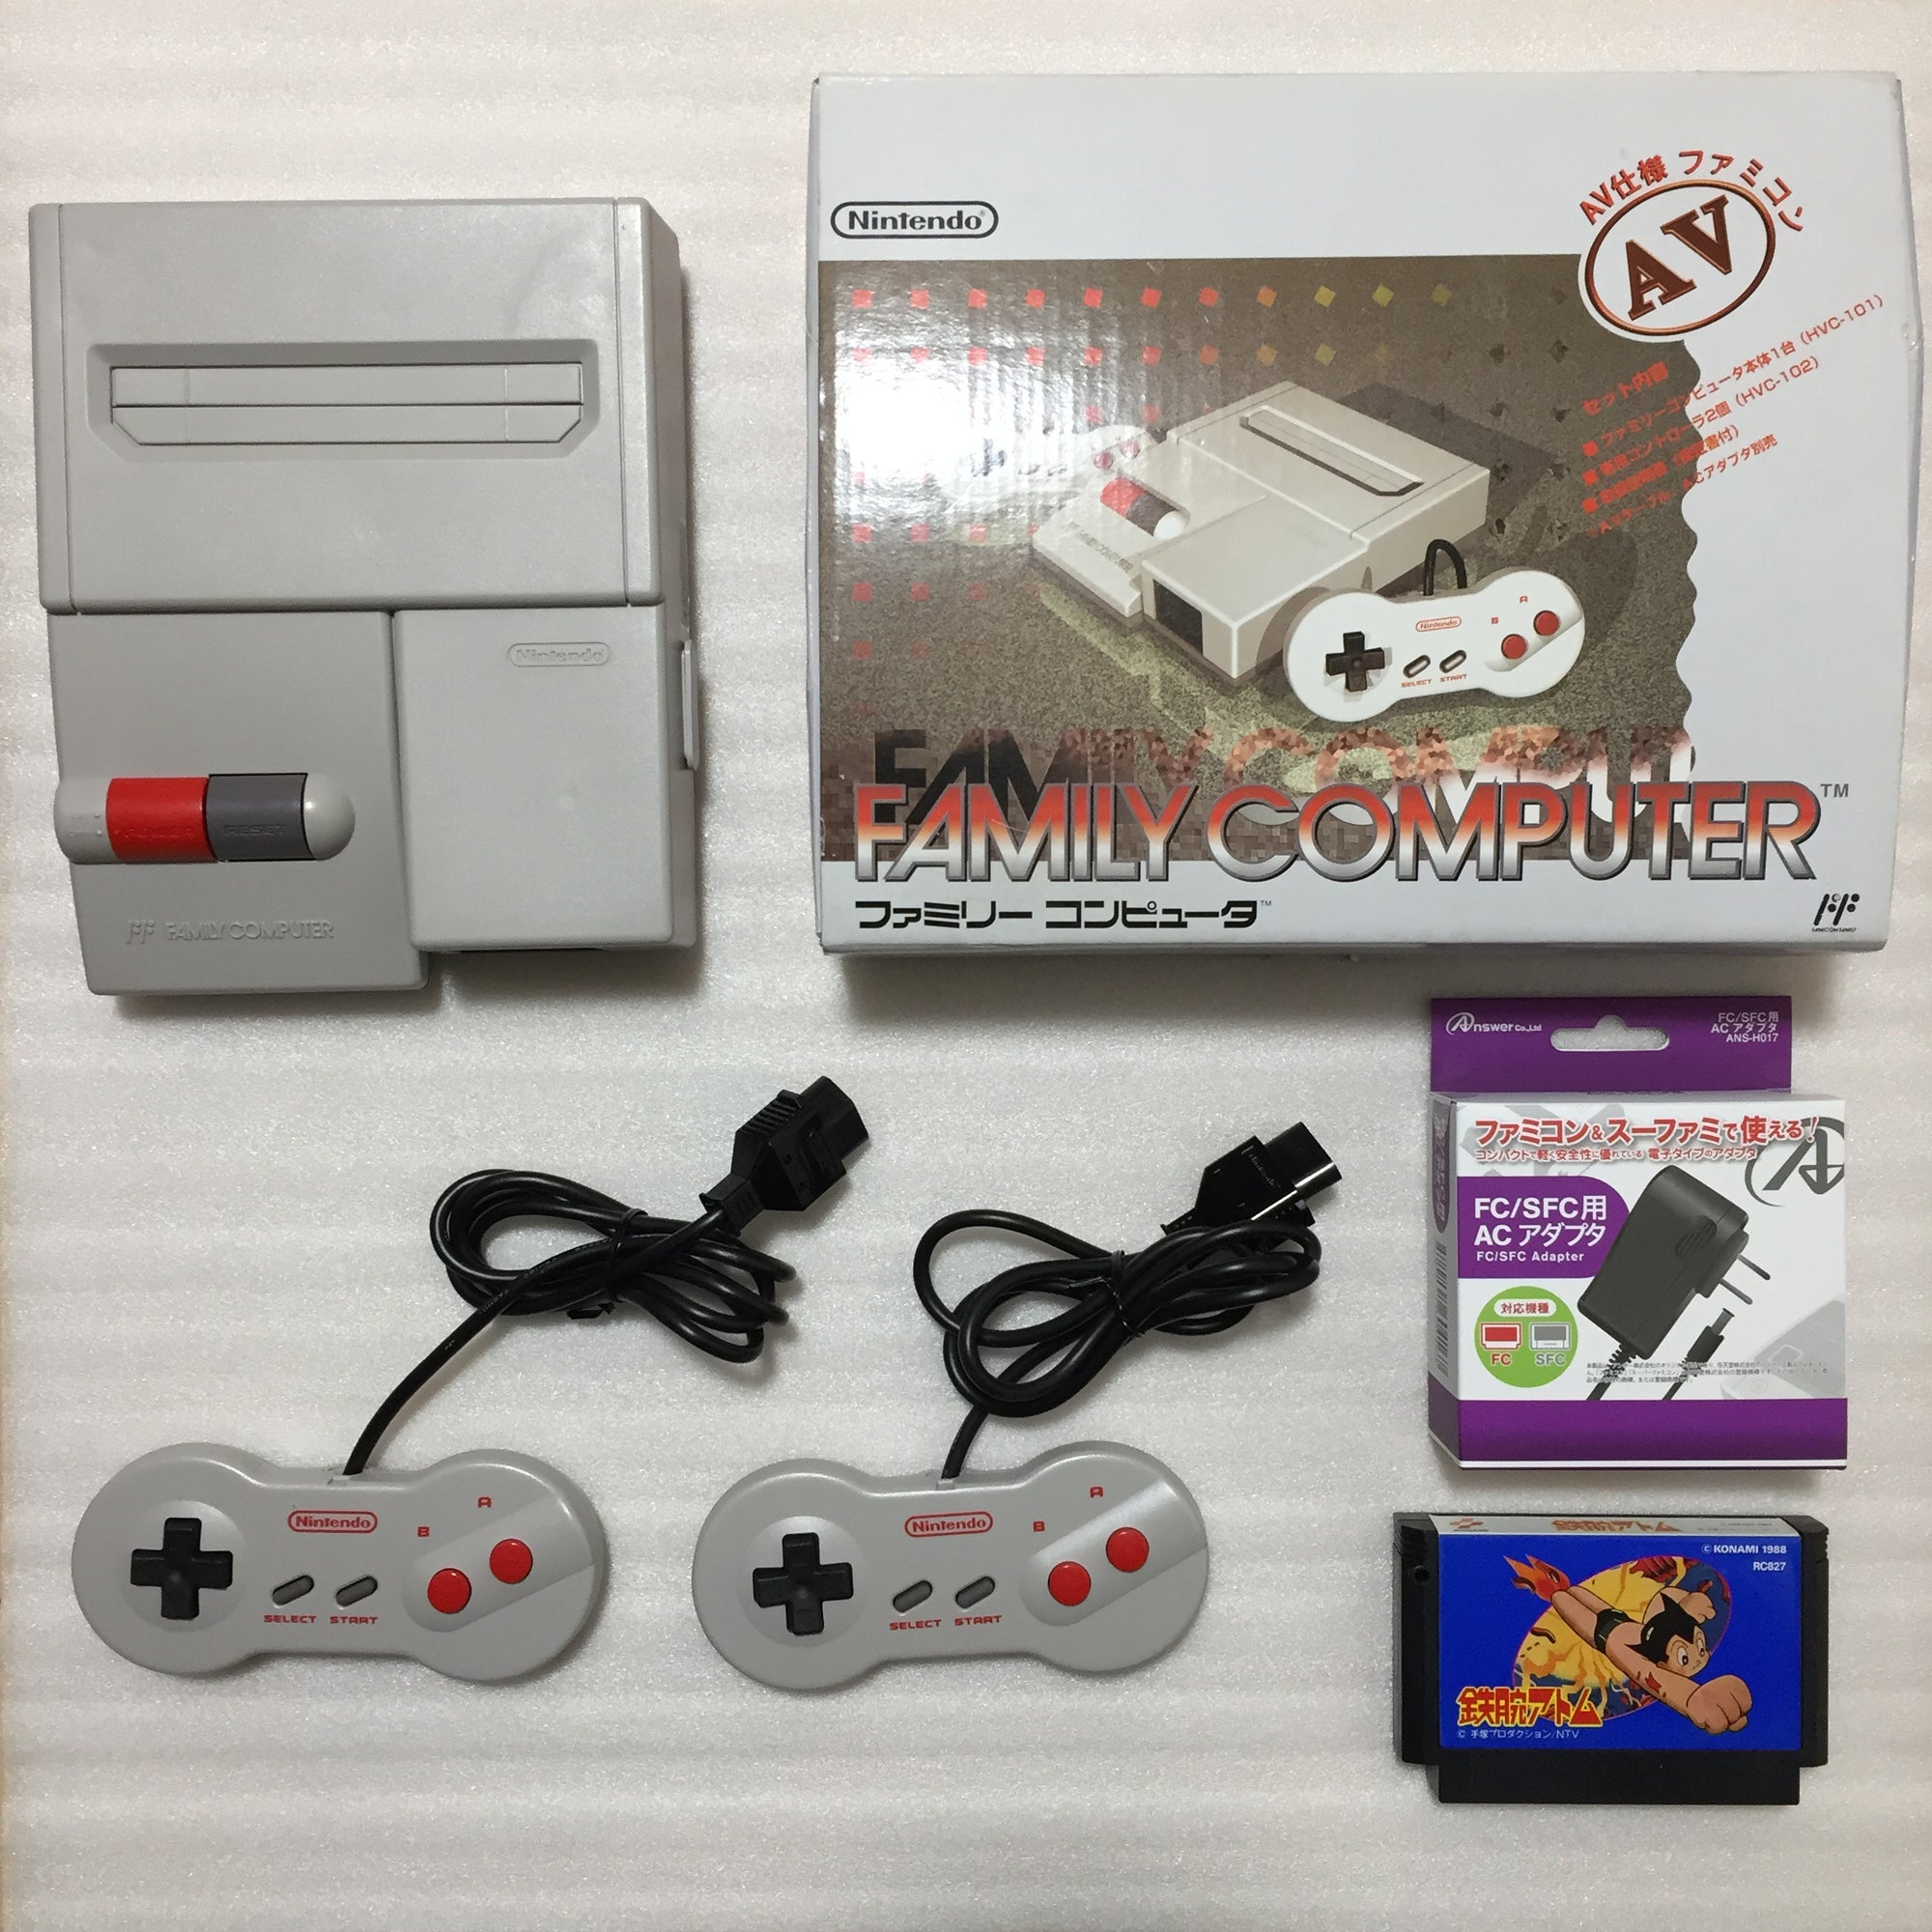 AV Famicom with Hi-Def NES kit - Atom set